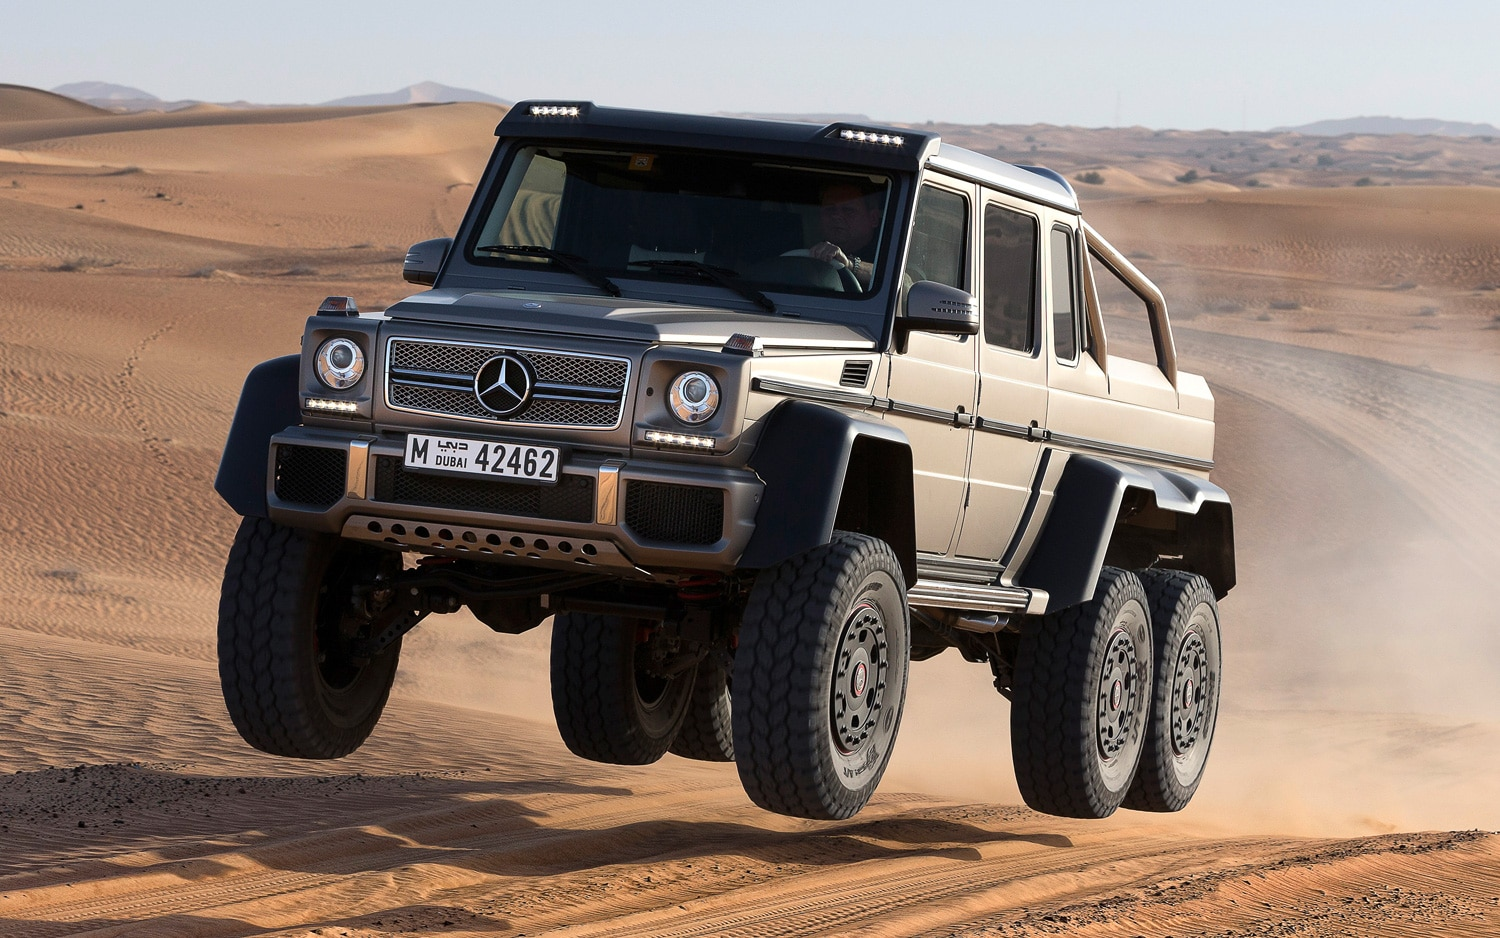 mercedes-benz g63 amg 6x6 priced from $511,000